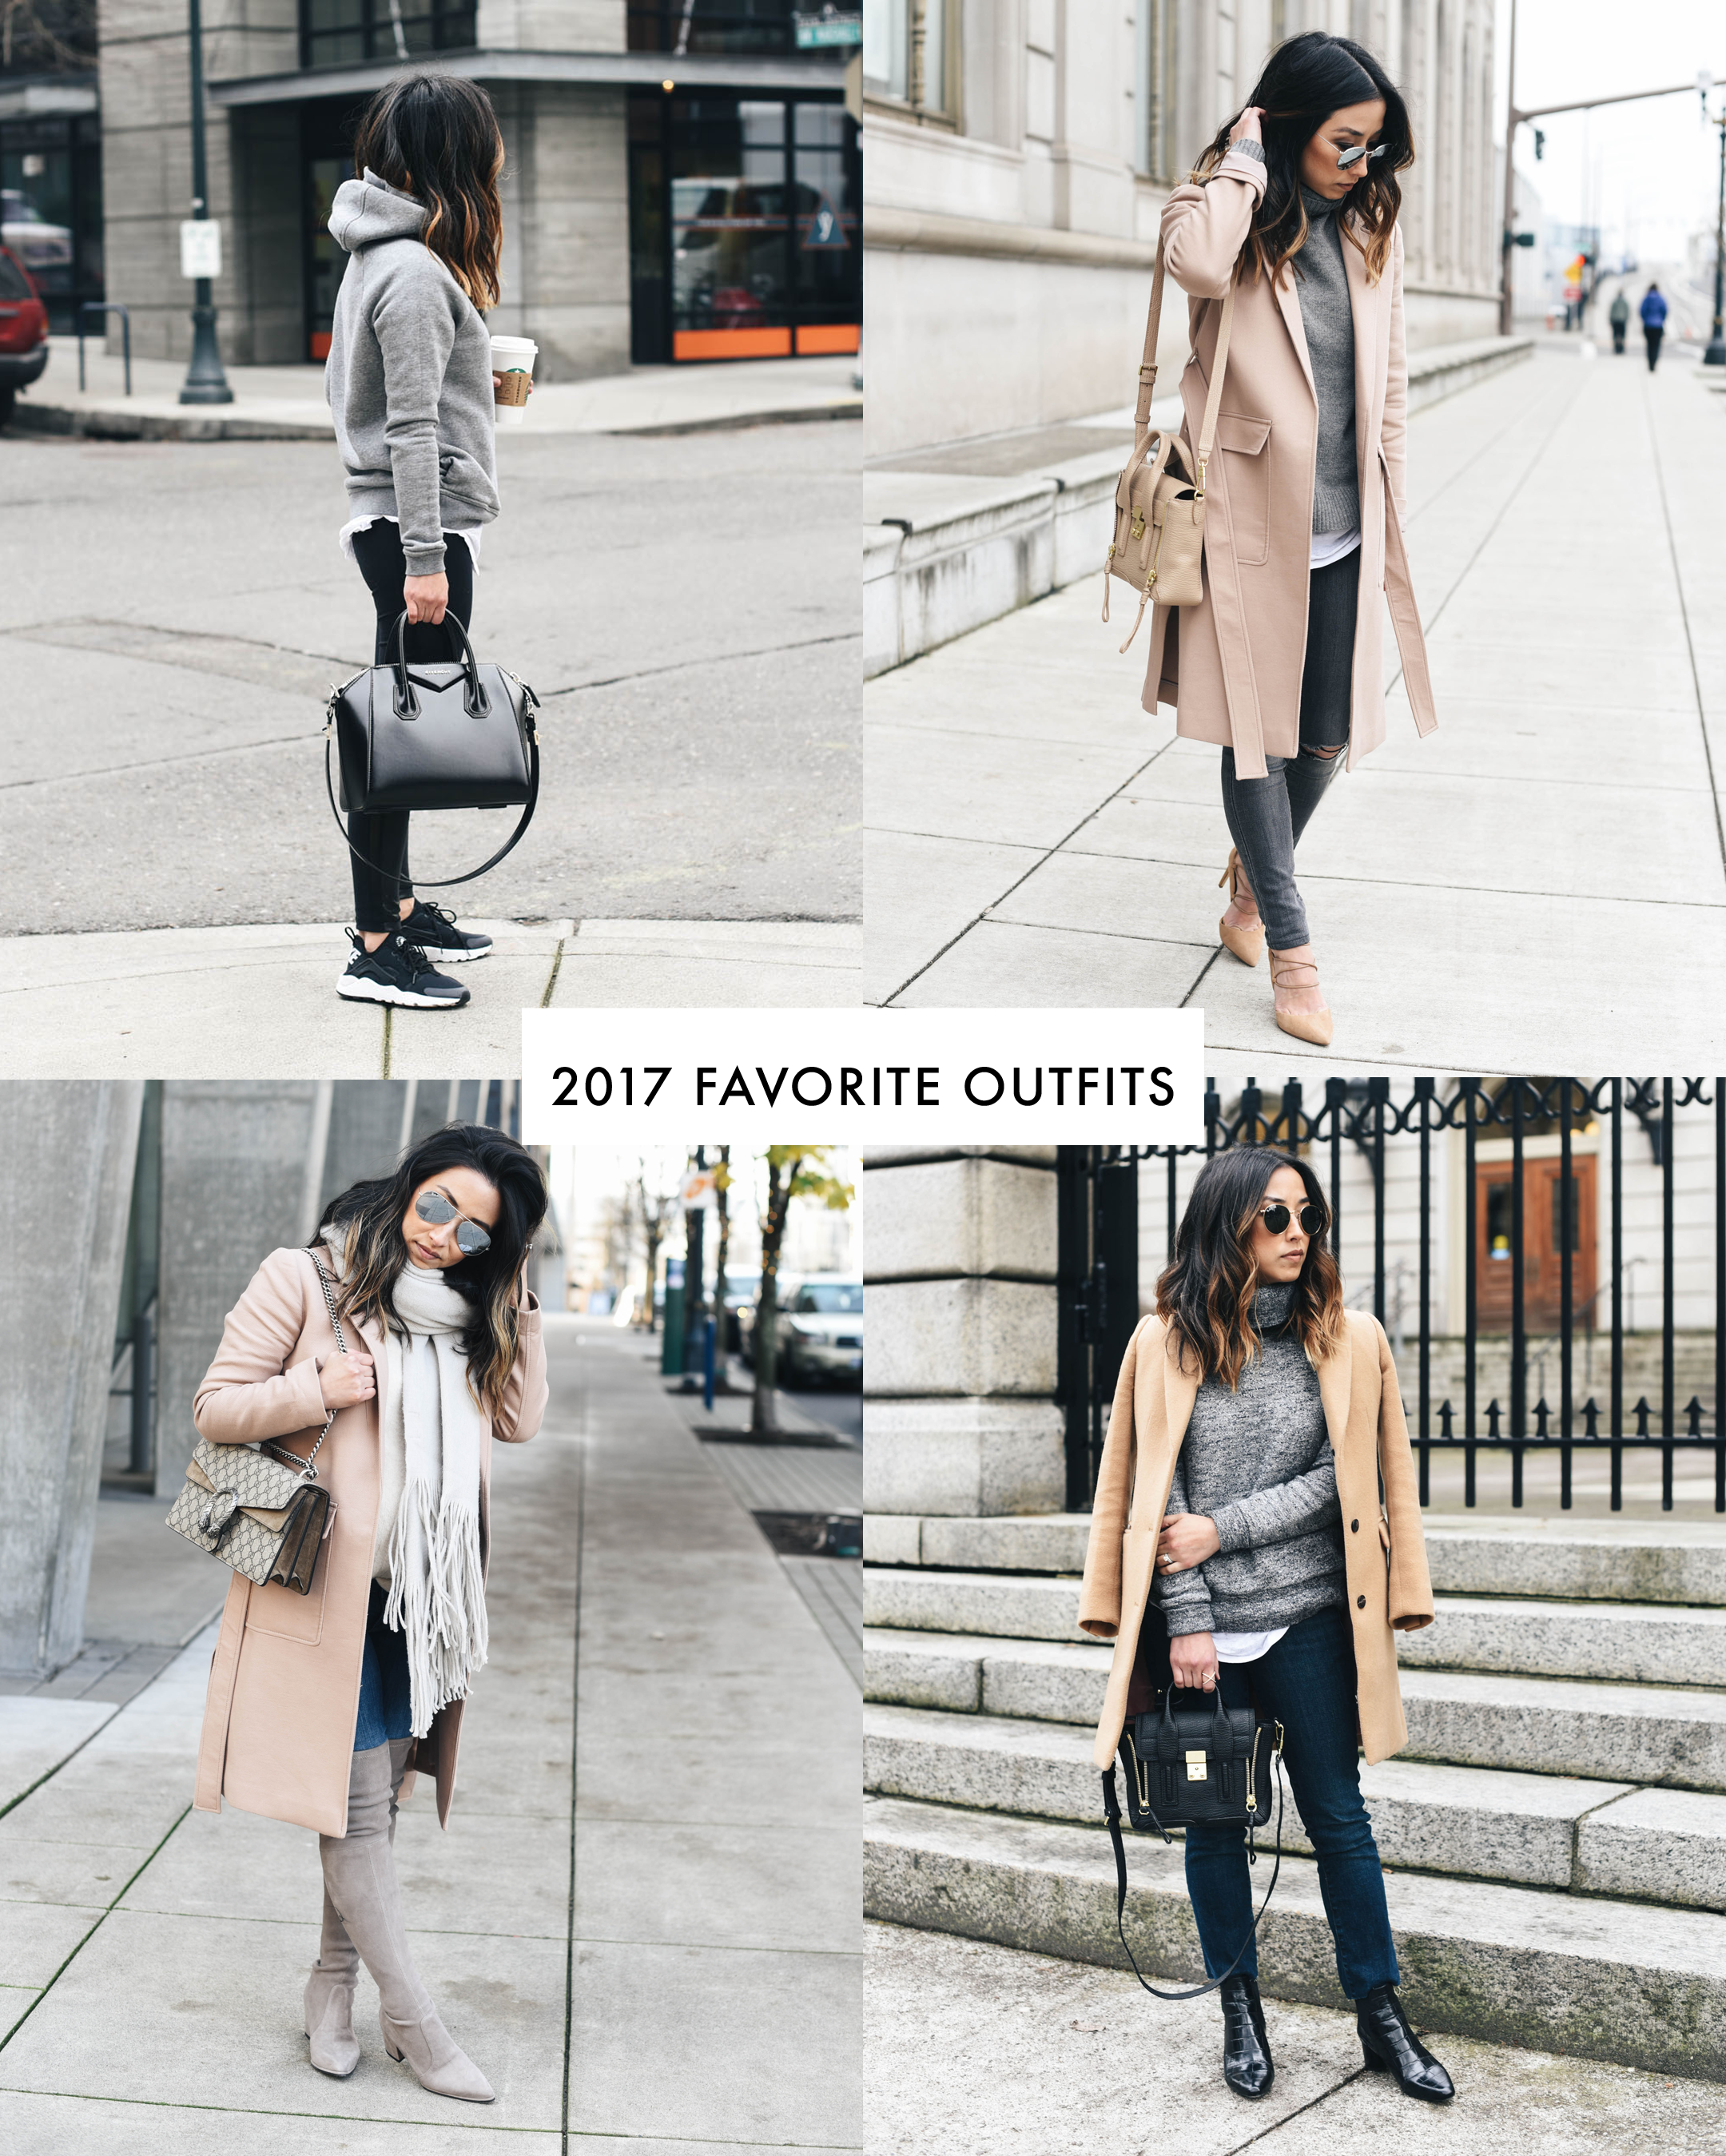 2017 Favorite outfits